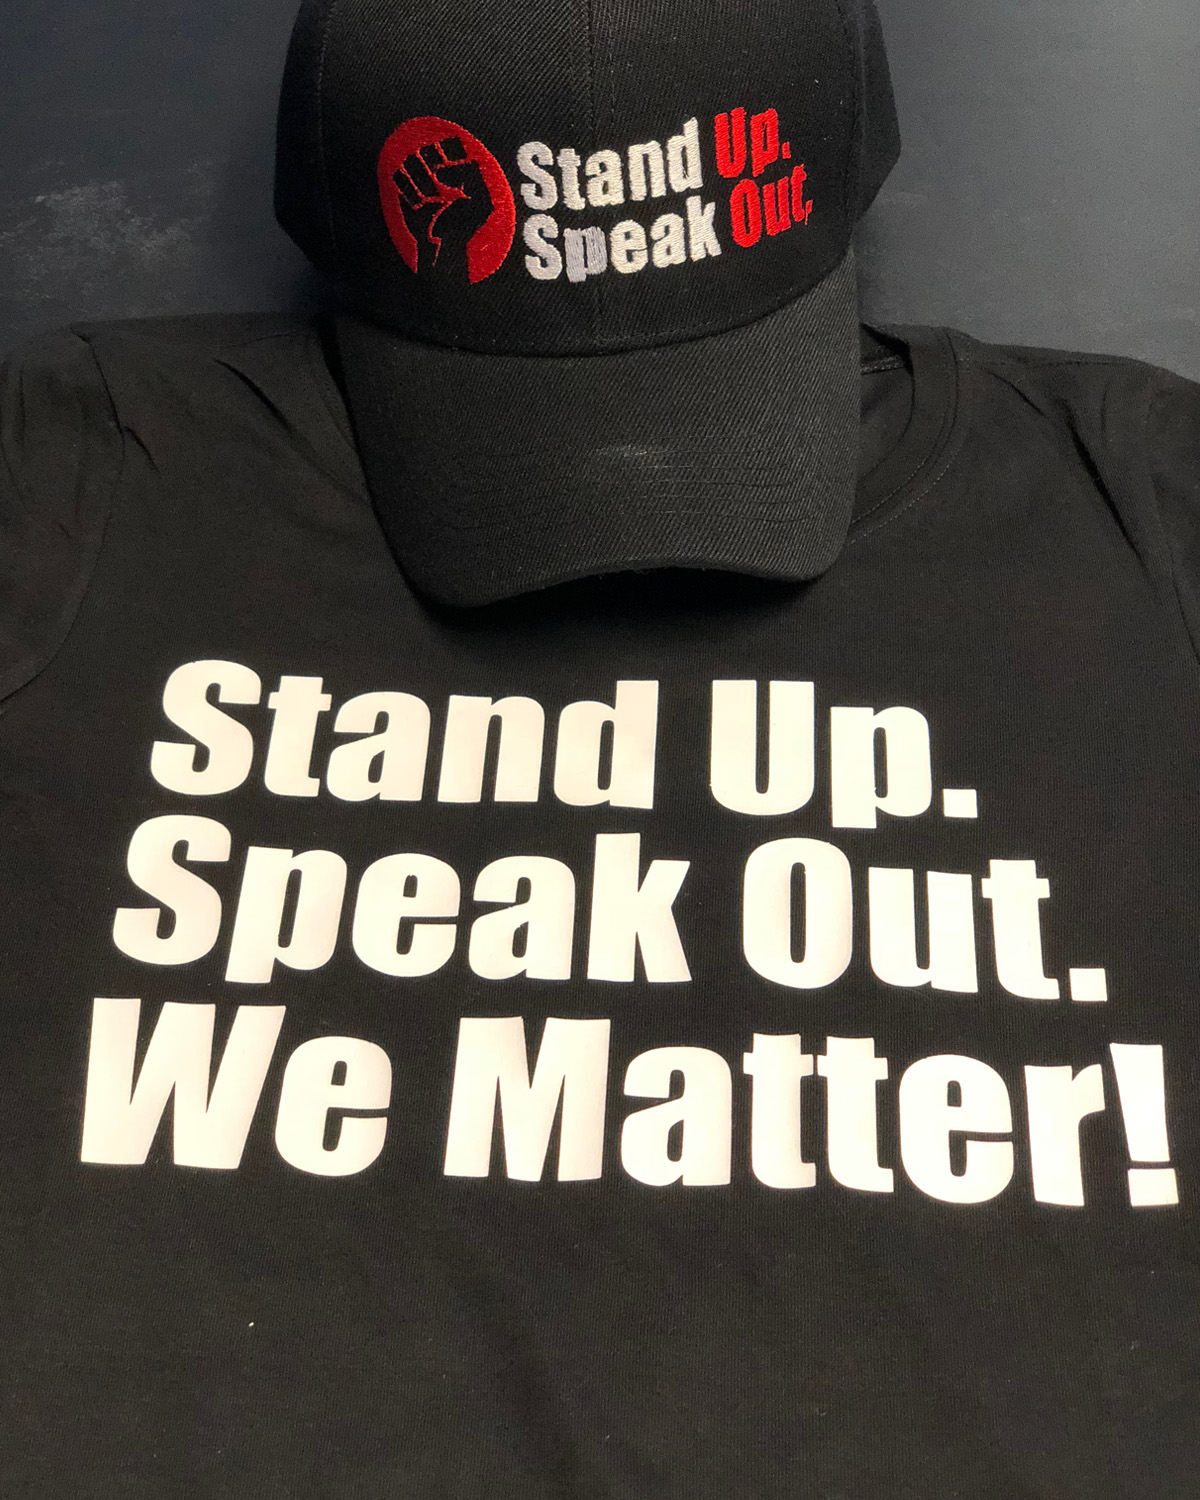 STAND UP. SPEAK UP.